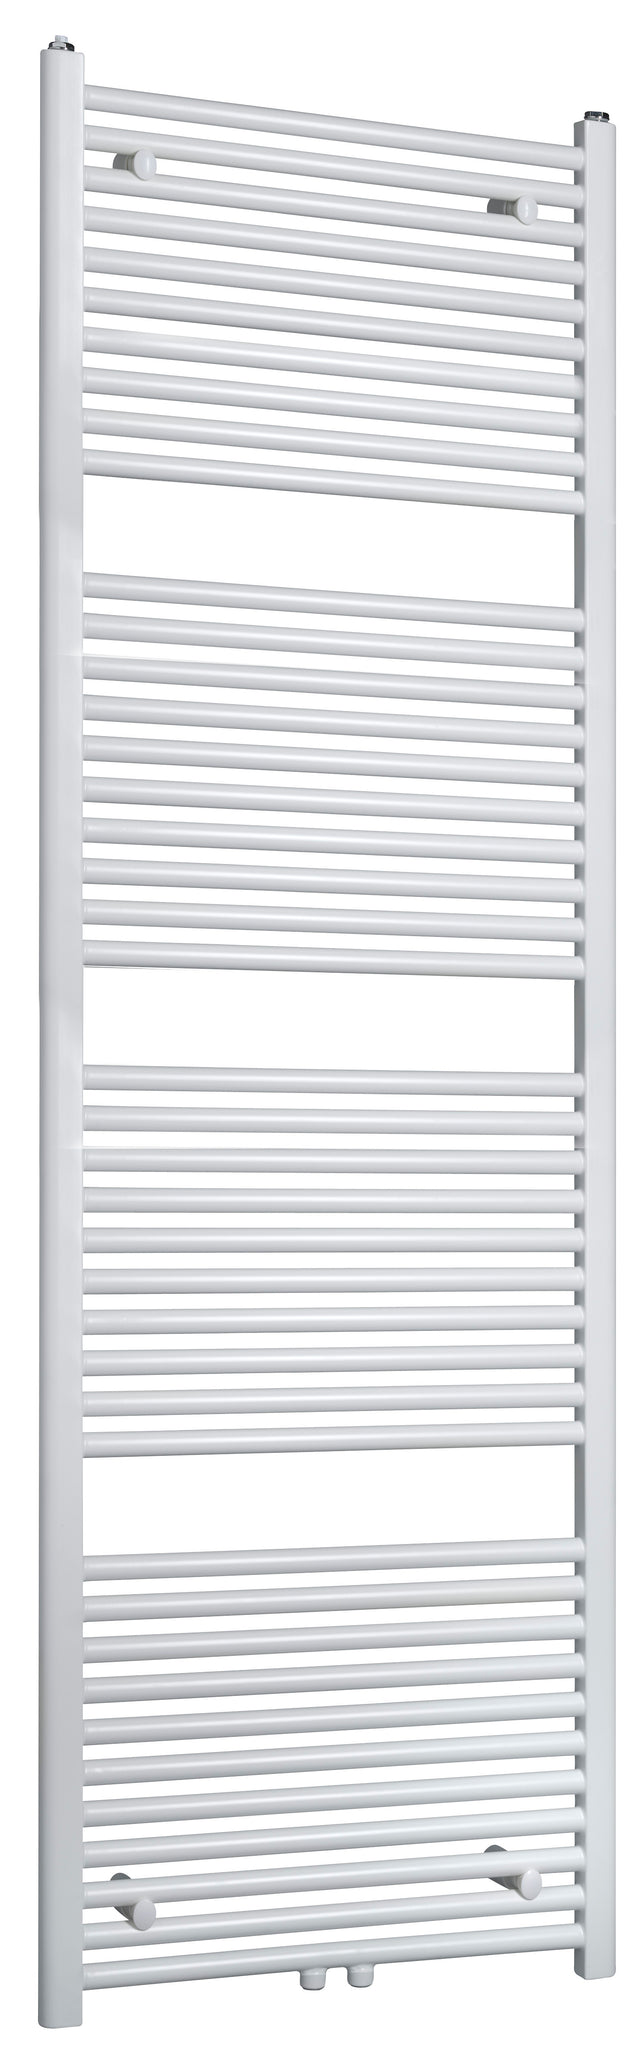 "[3860090] Best-Design ""Zero"" radiator recht model 1800x600mm"